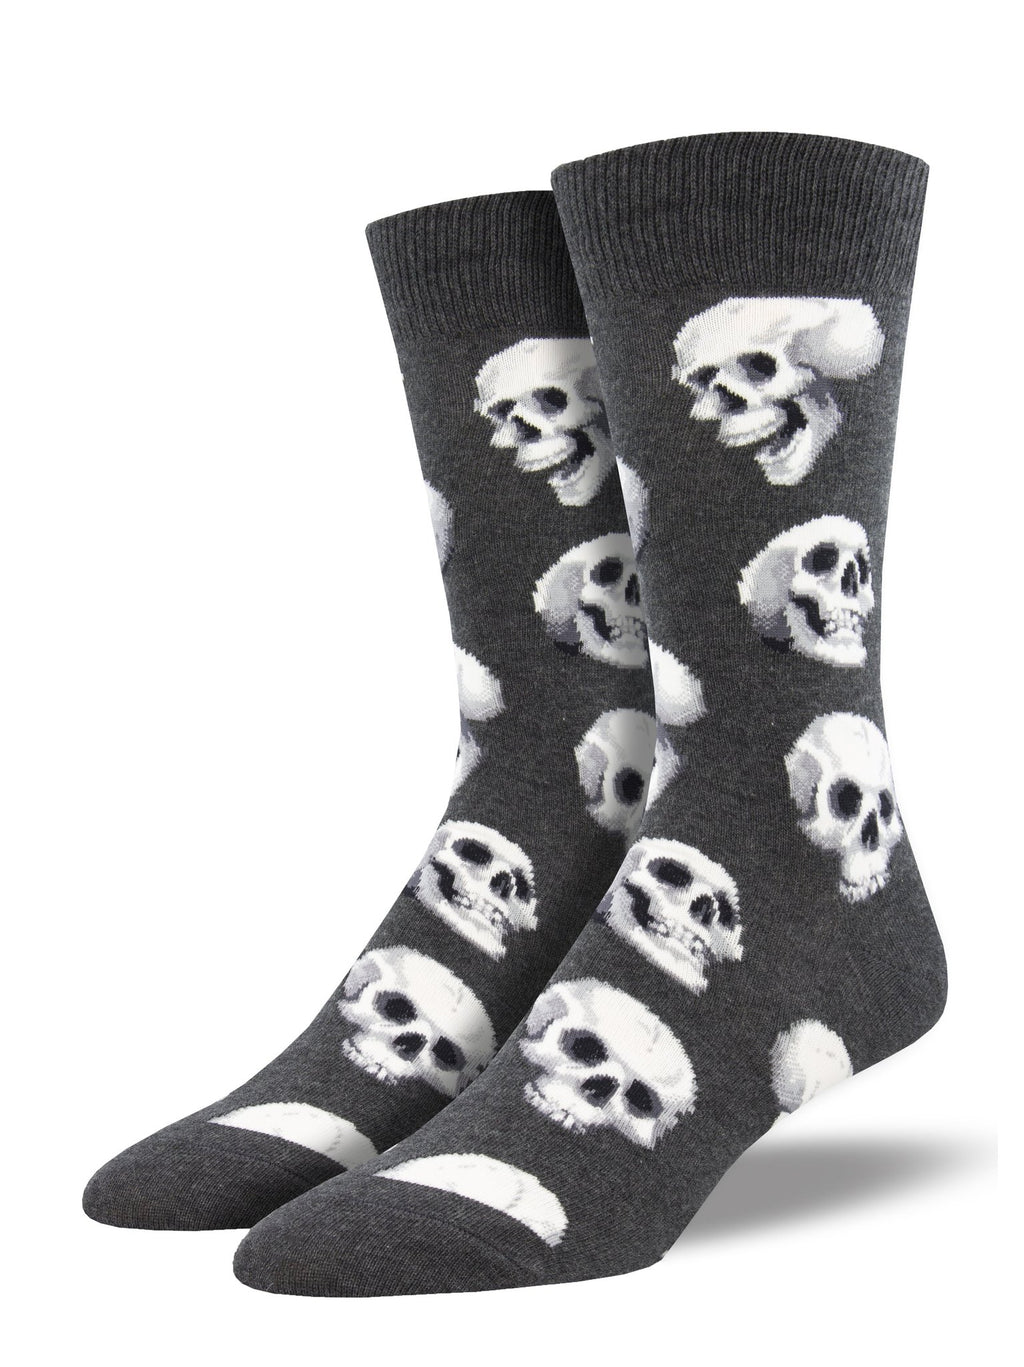 Sacred Skulls Charcoal Heather Men's Socks